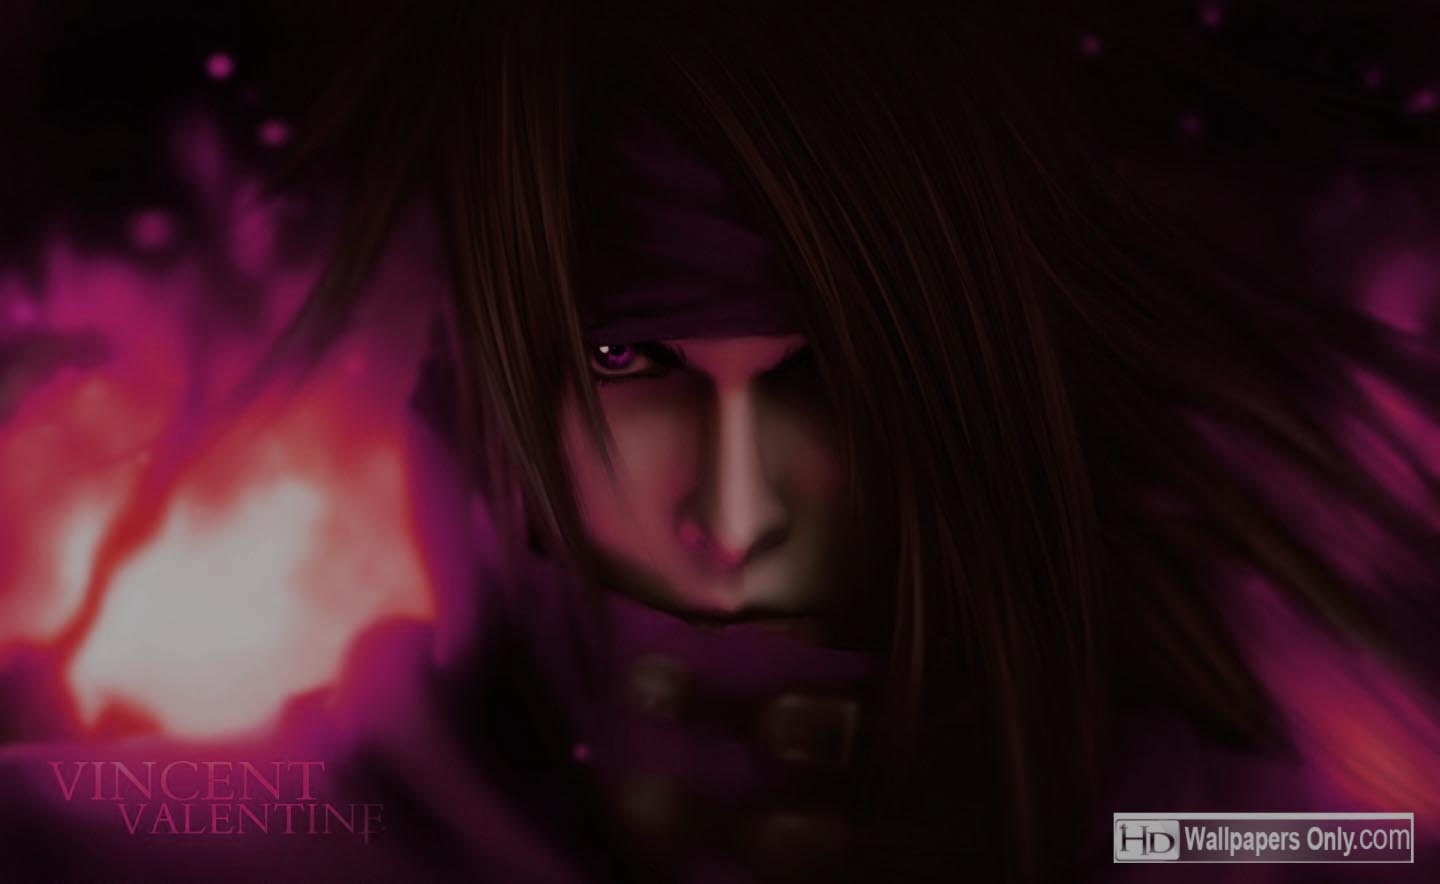 Vincent Valentine Chaos Wallpapers Wallpaper Cave